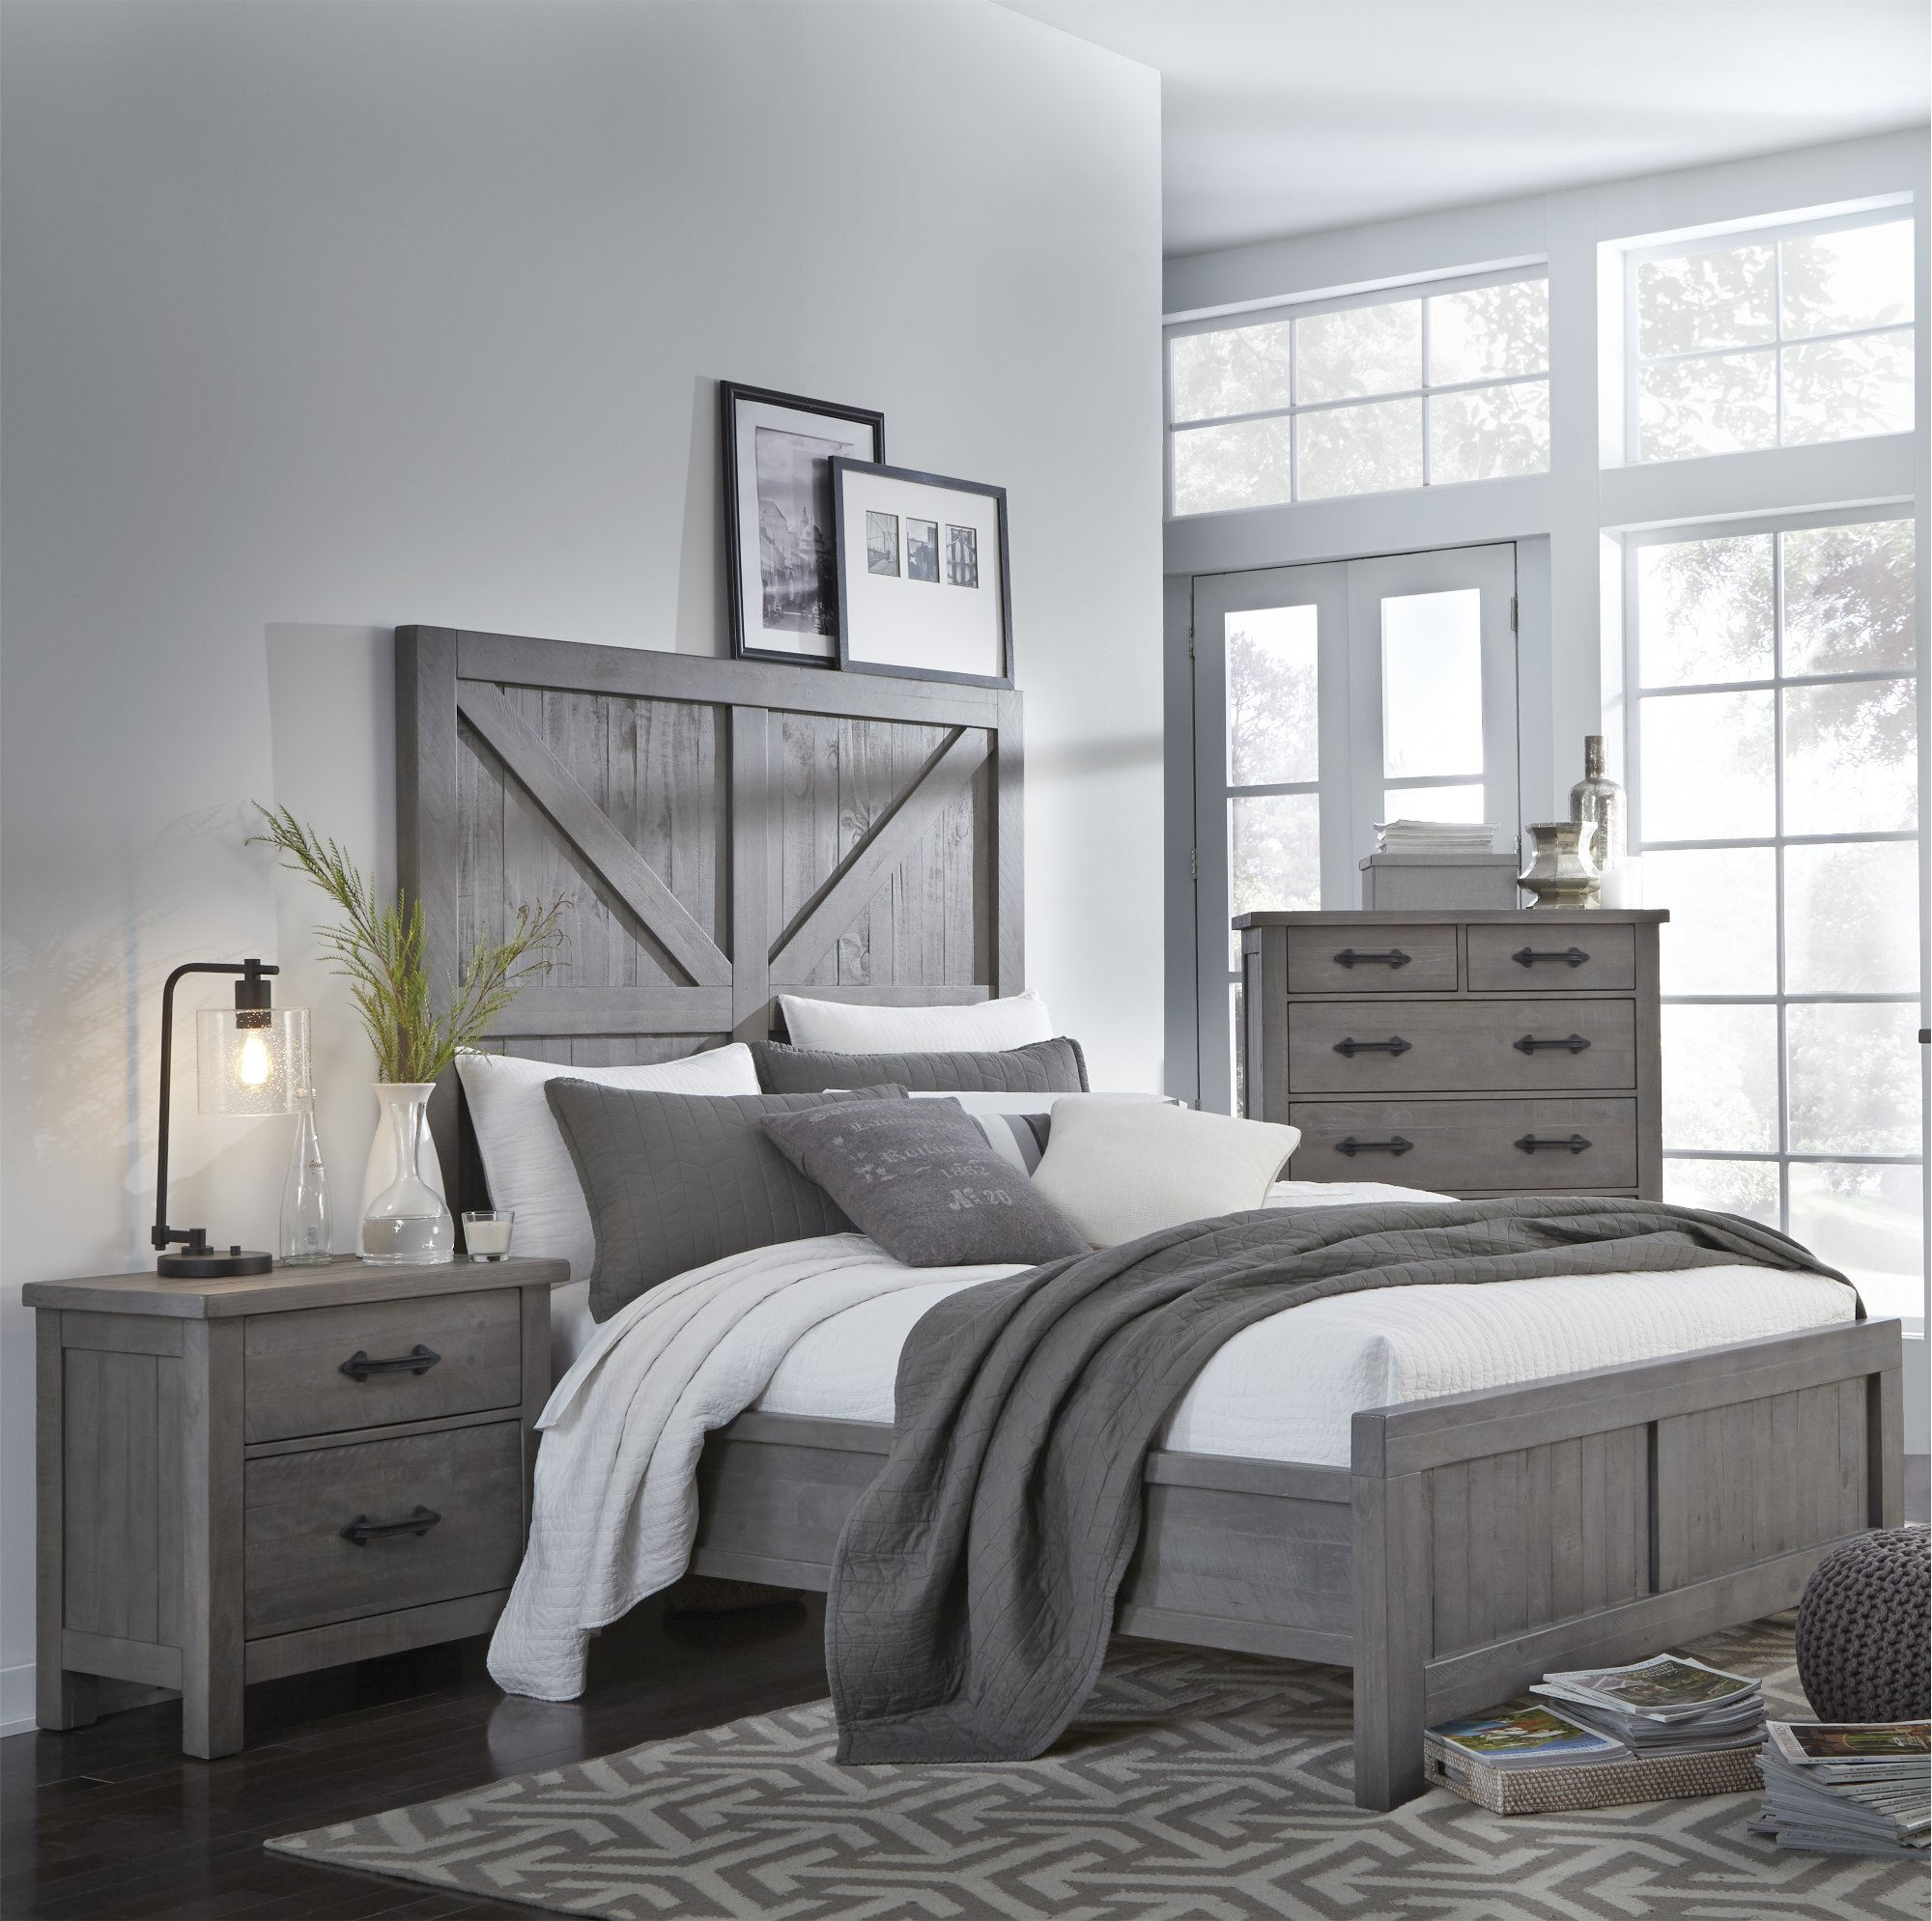 Gray Rustic Contemporary 6 Piece King Bedroom Set Austin Rc Willey Furniture Store